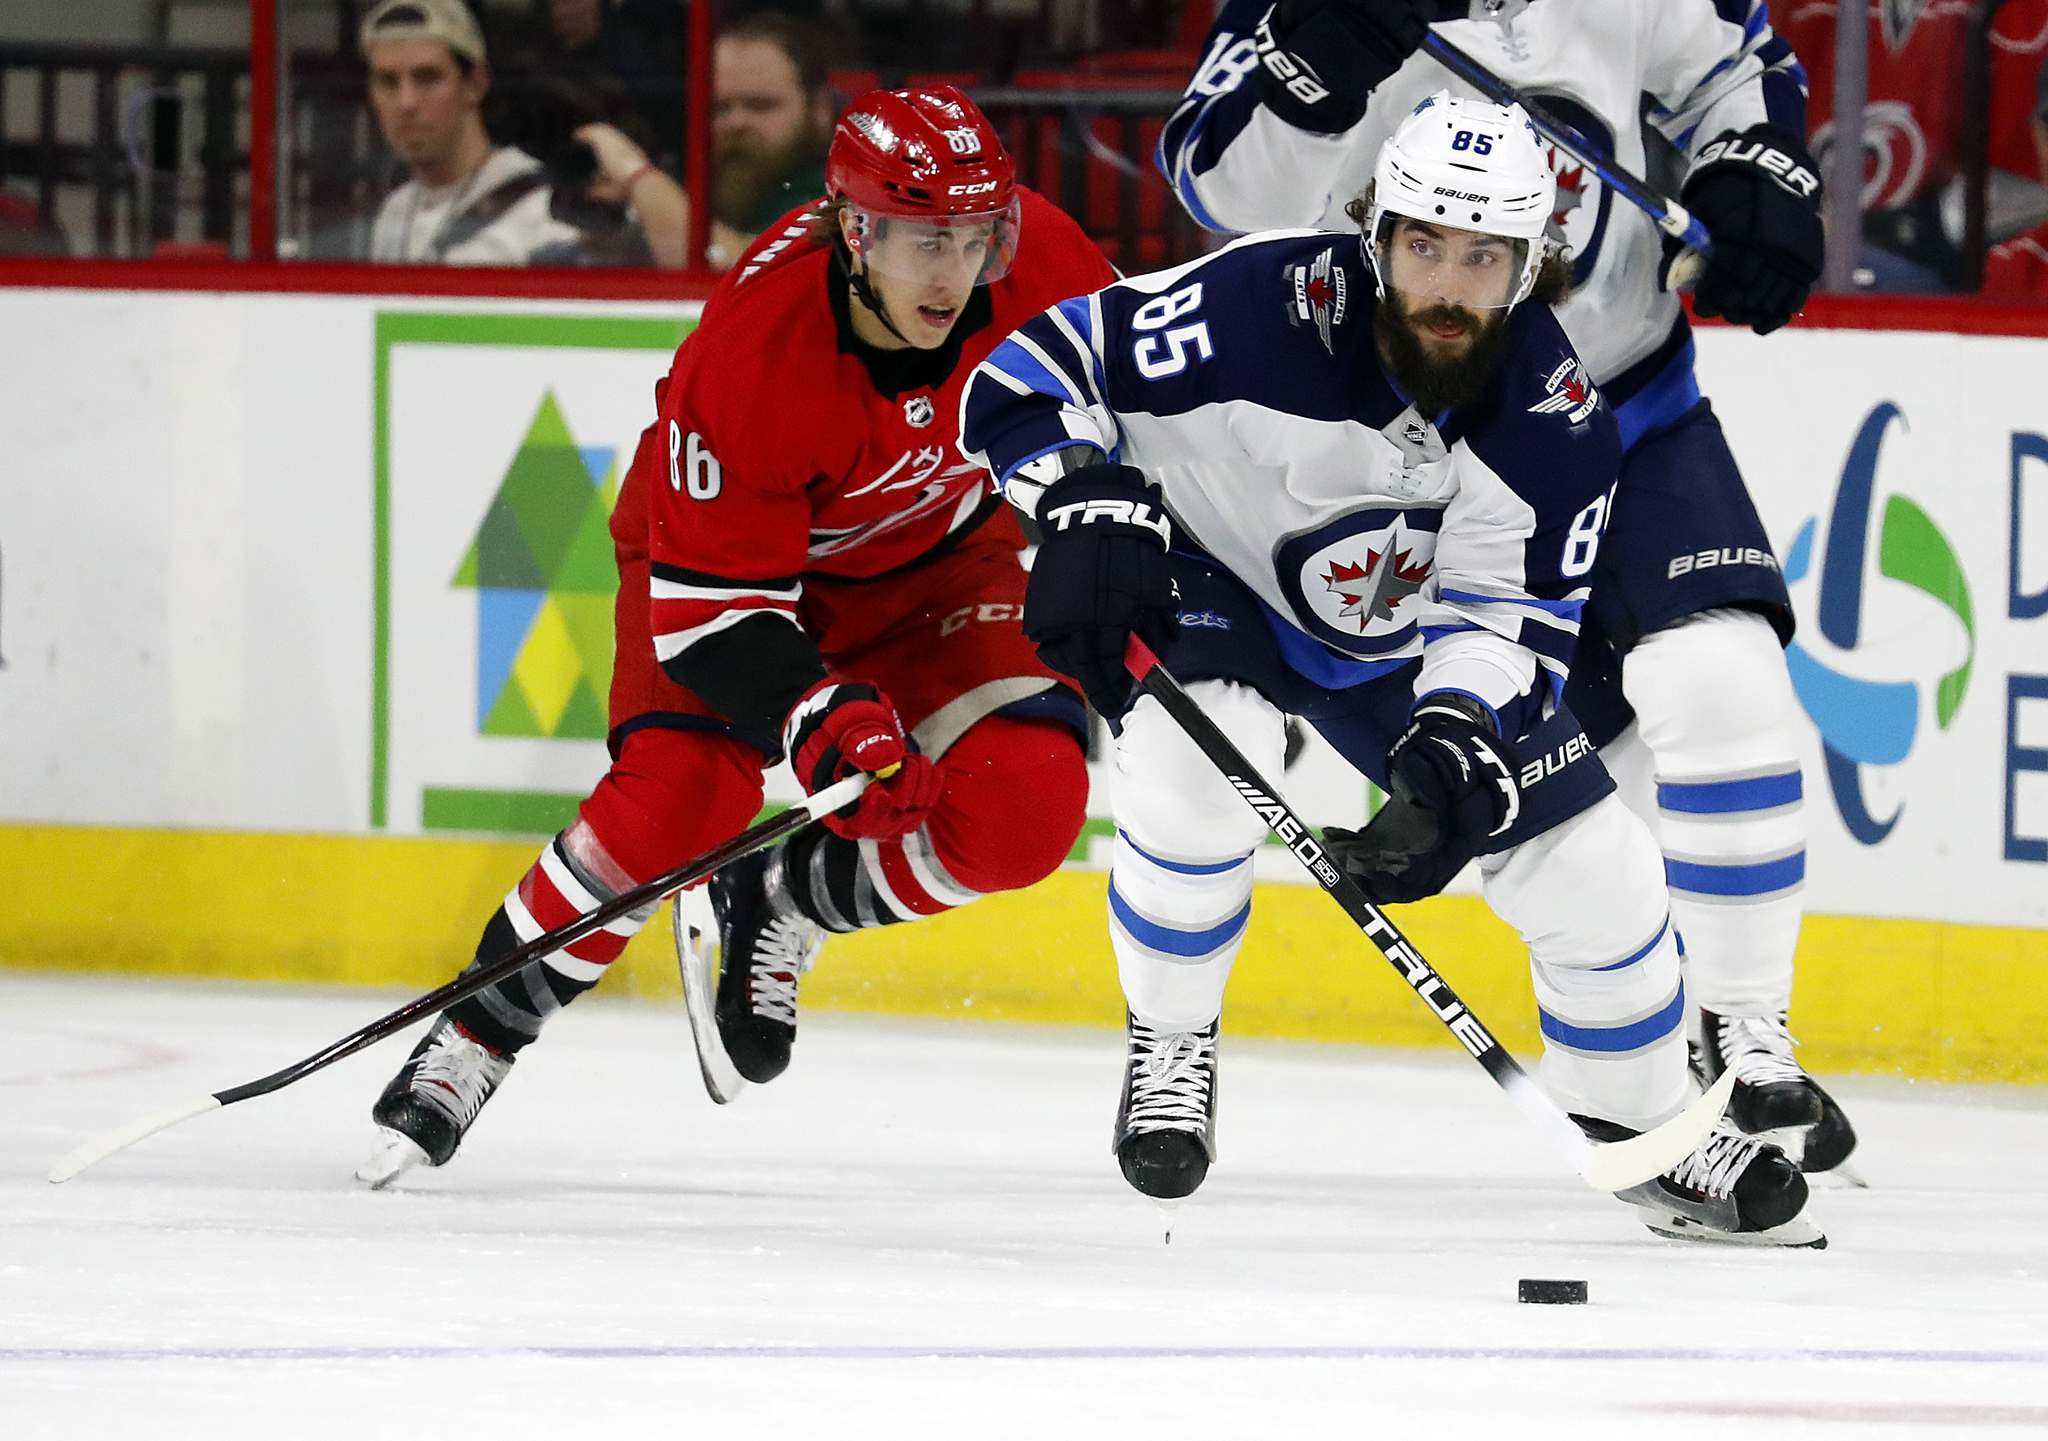 AP Photo/Karl B DeBlaker</p><p>Winnipeg Jets&#39; Mathieu Perreault, right, plays against the Carolina Hurricanes. Perreault is relishing the opportunity for a fresh start during the playoffs.</p>